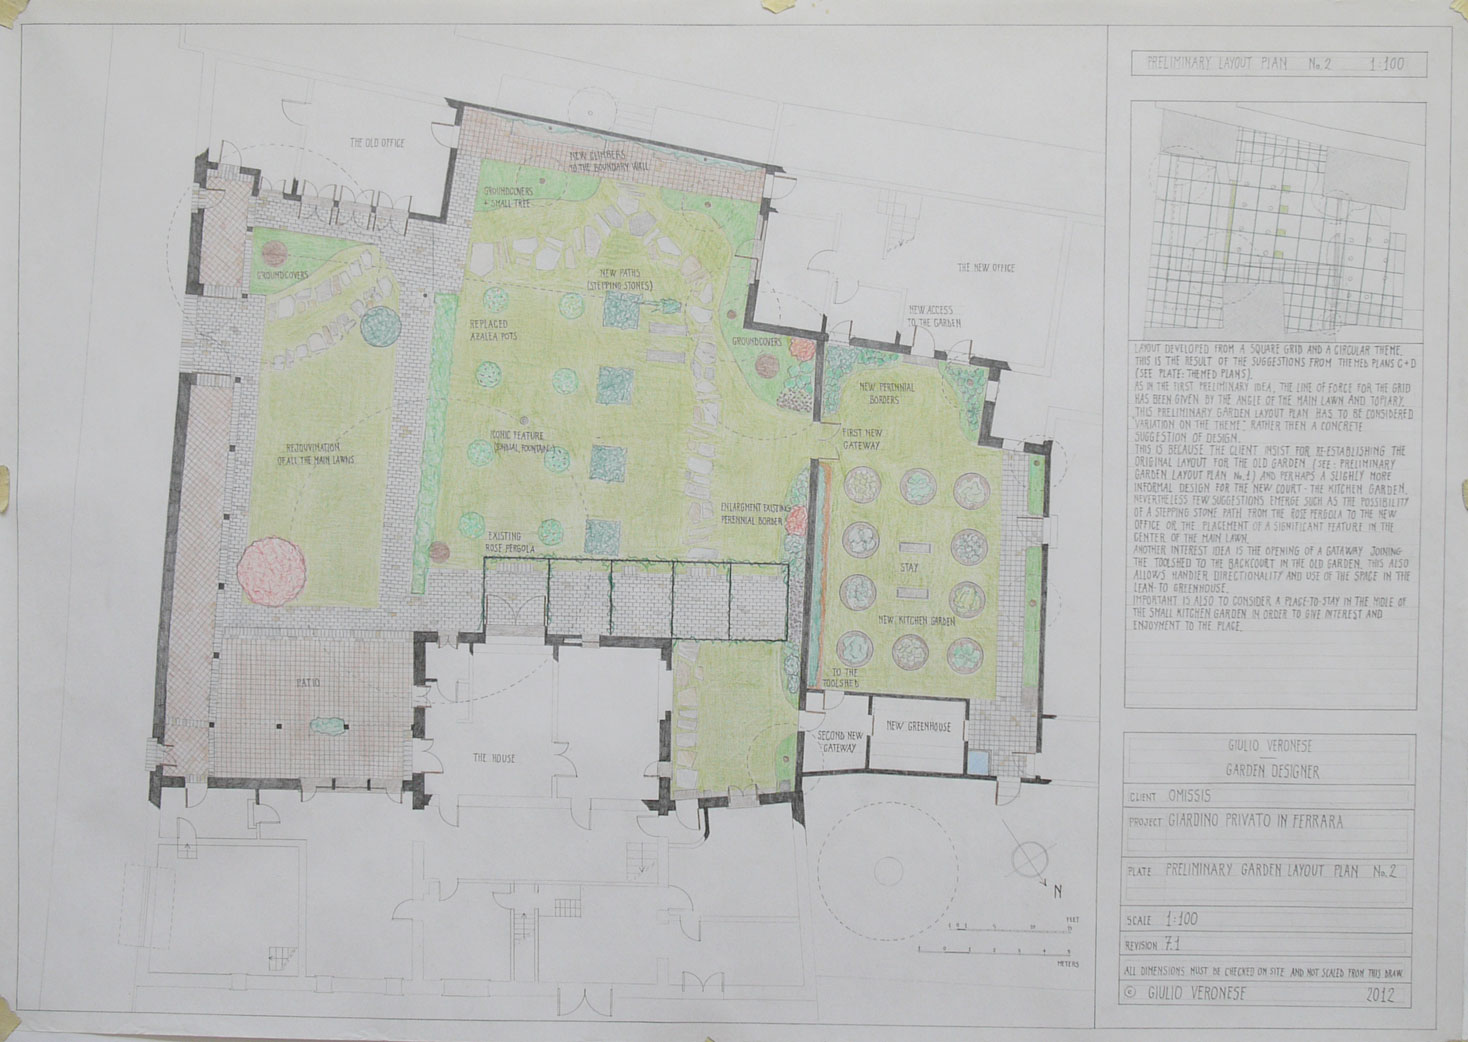 Plate 7 - Preliminary layout plan no.2